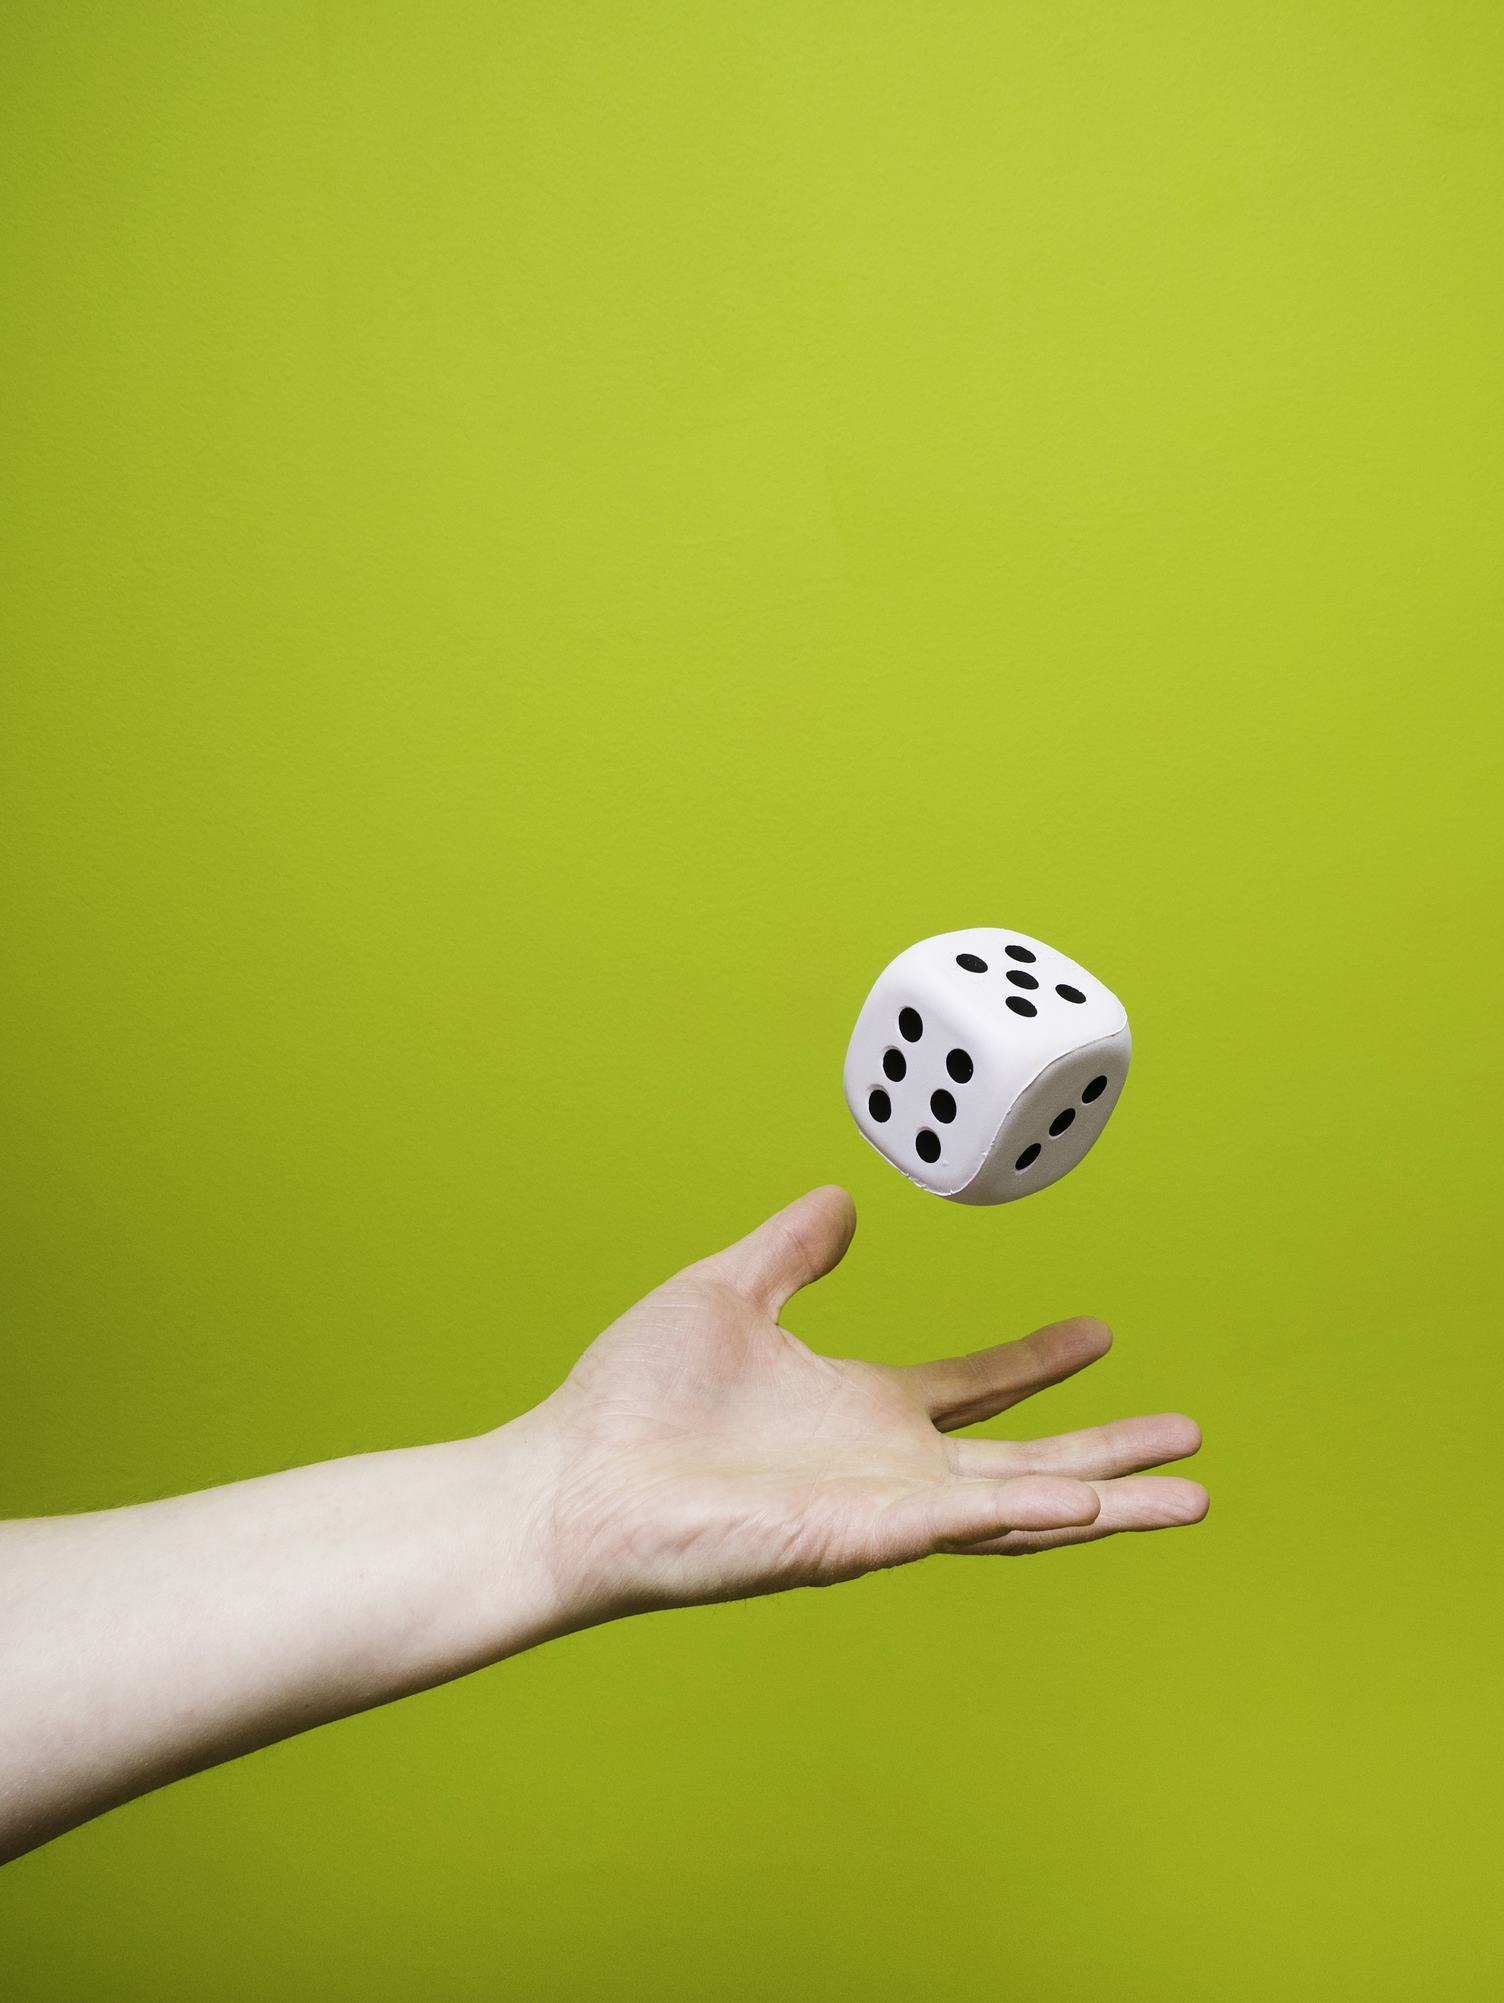 Man Throwing a Large White Dice